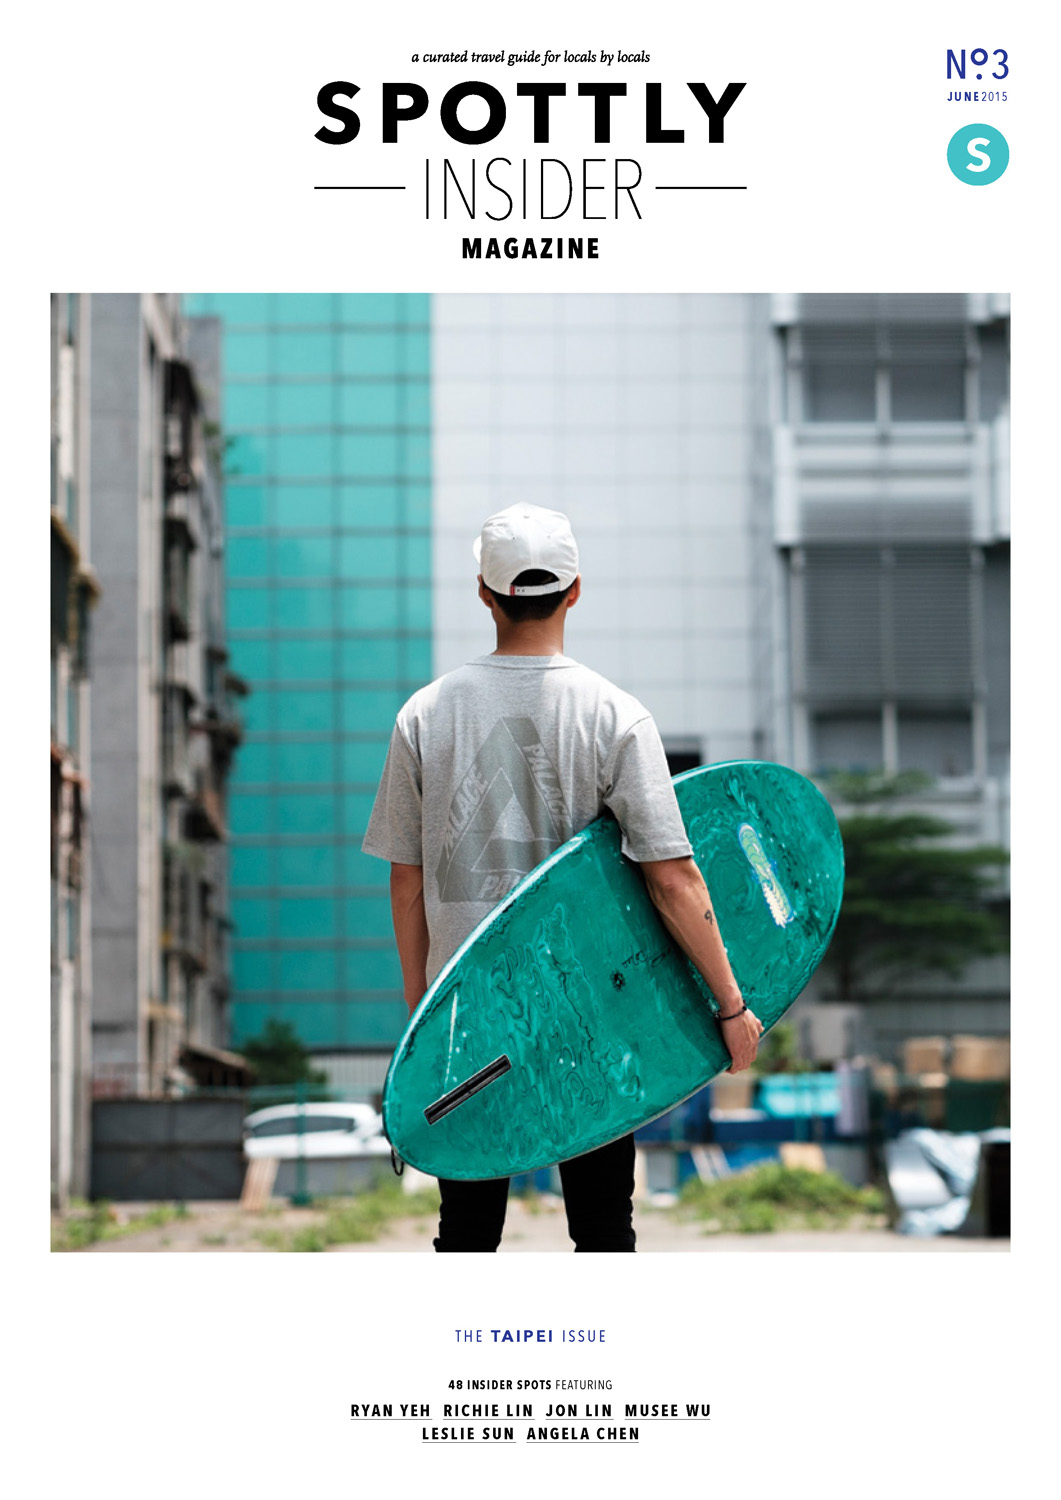 Spottly Insider Magazine The Taipei Issue June 2015